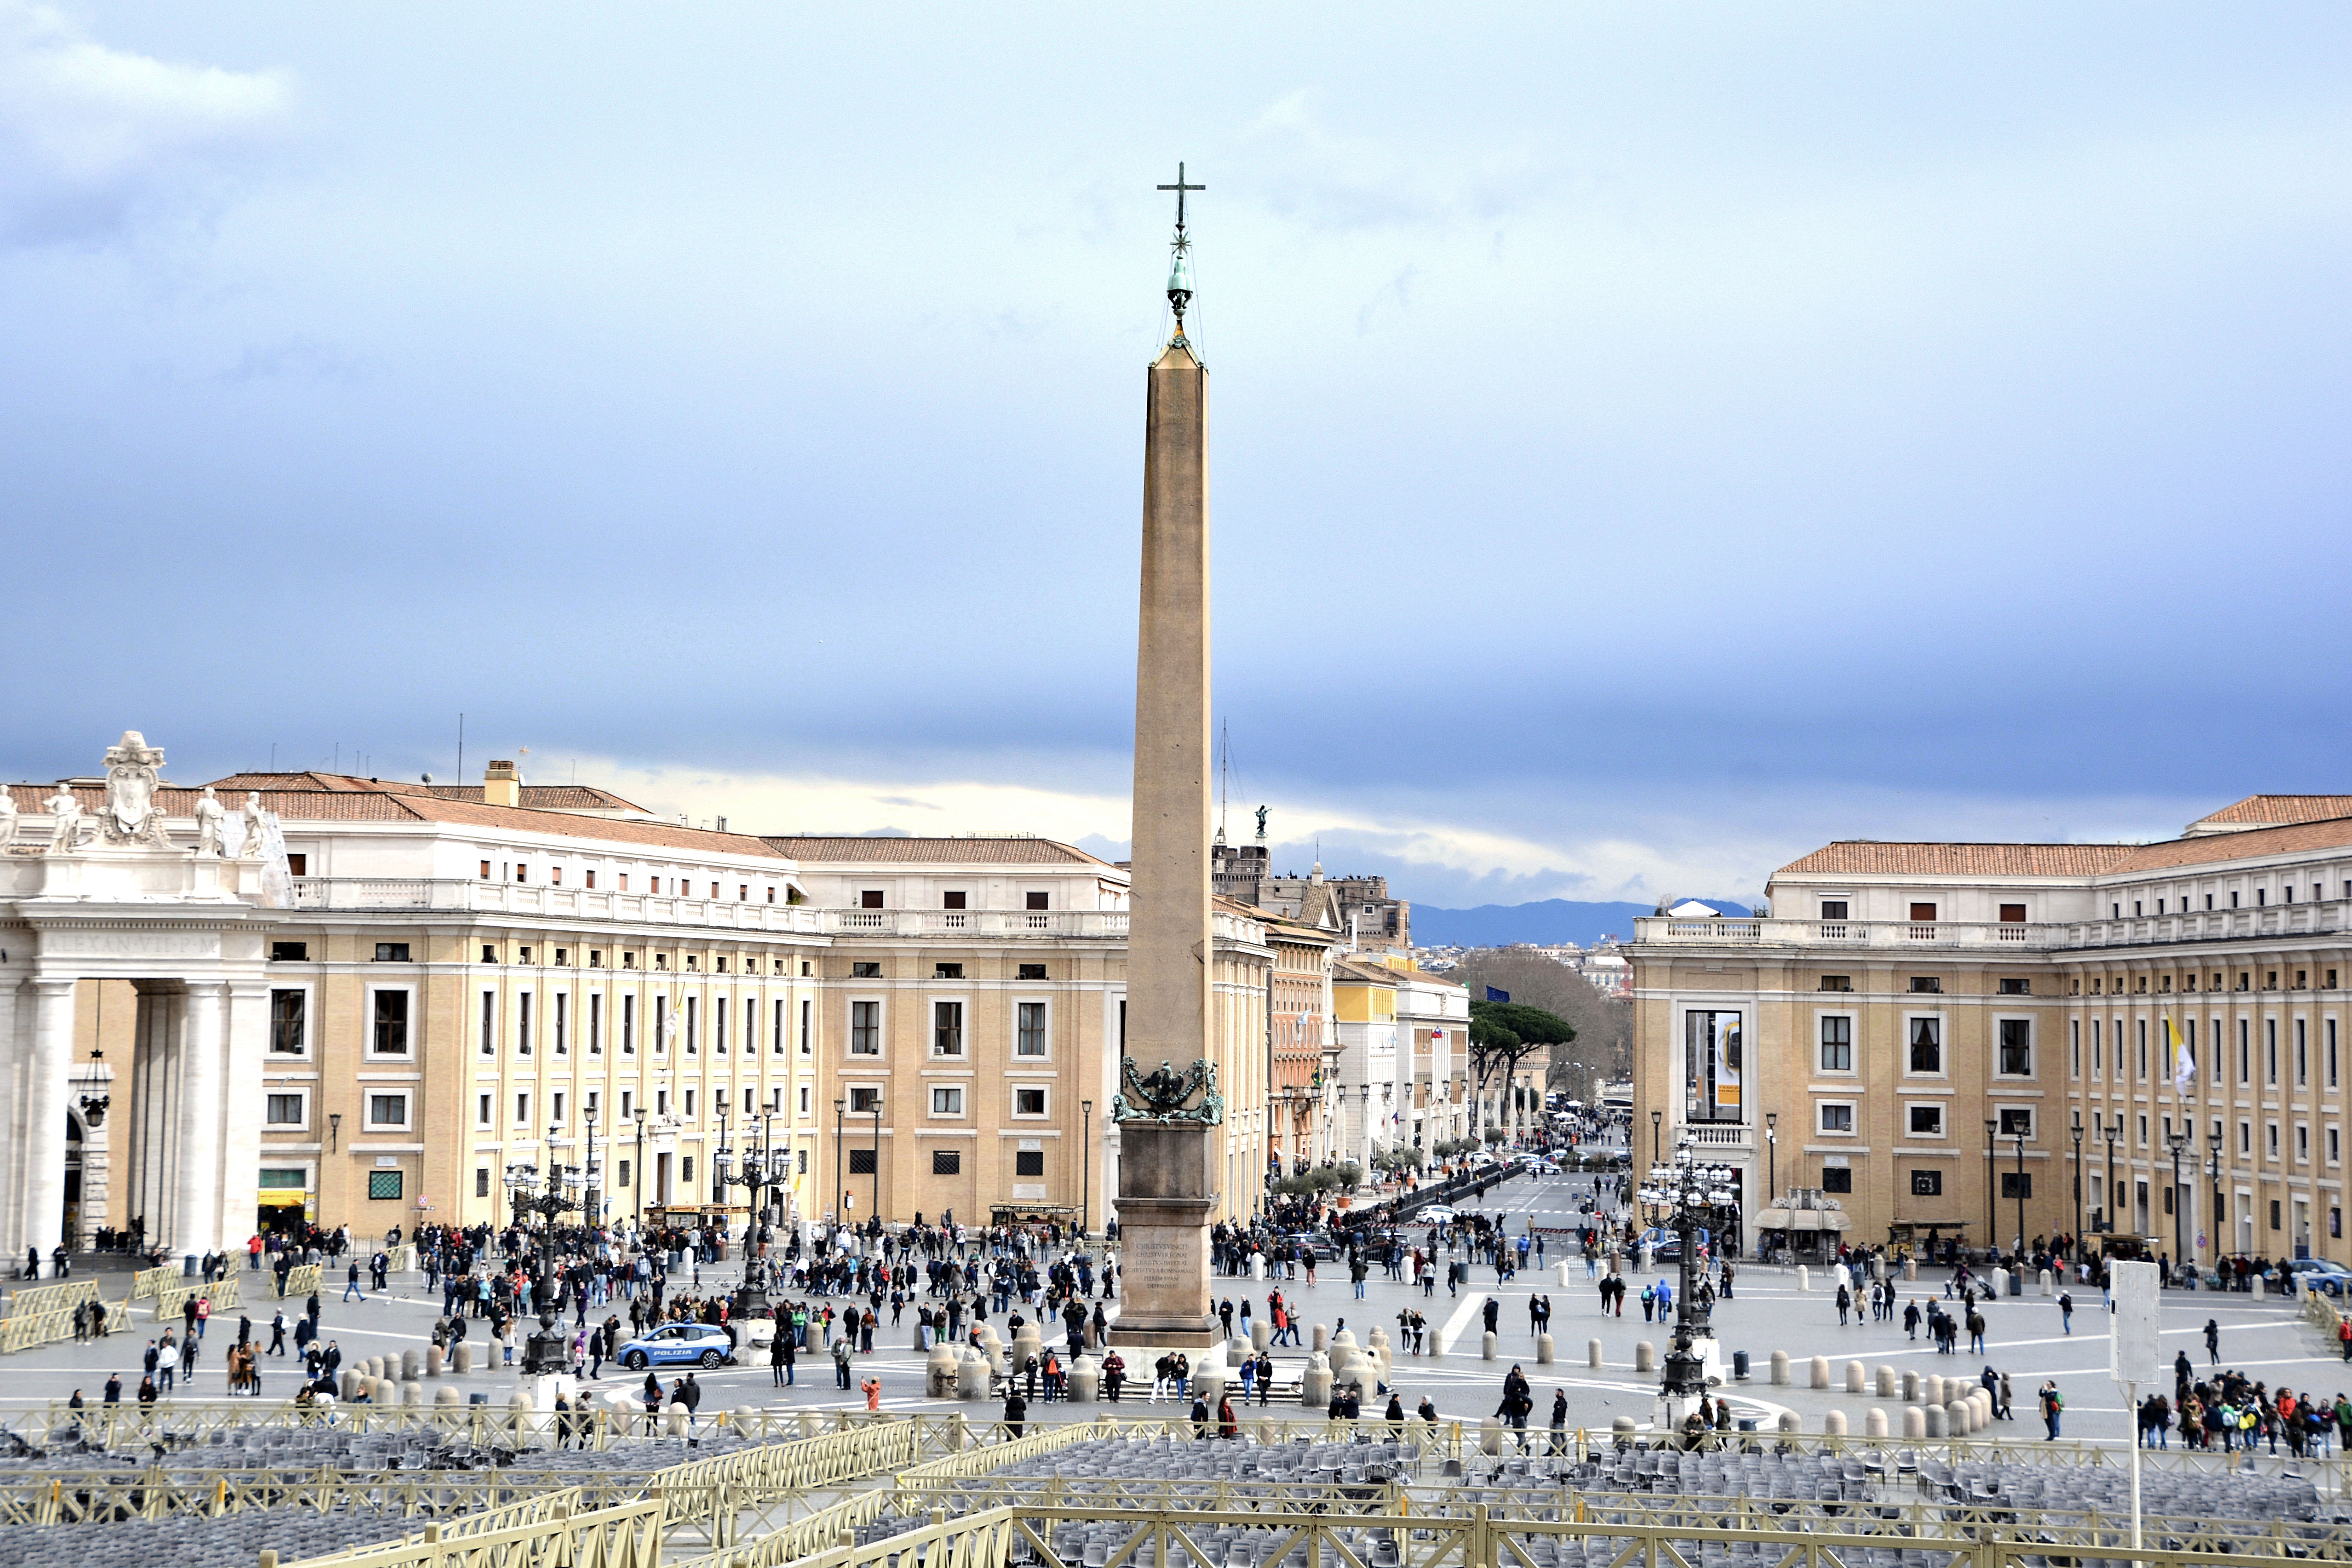 Scavi Tour At Vatican City: 5 Tips Before You Go